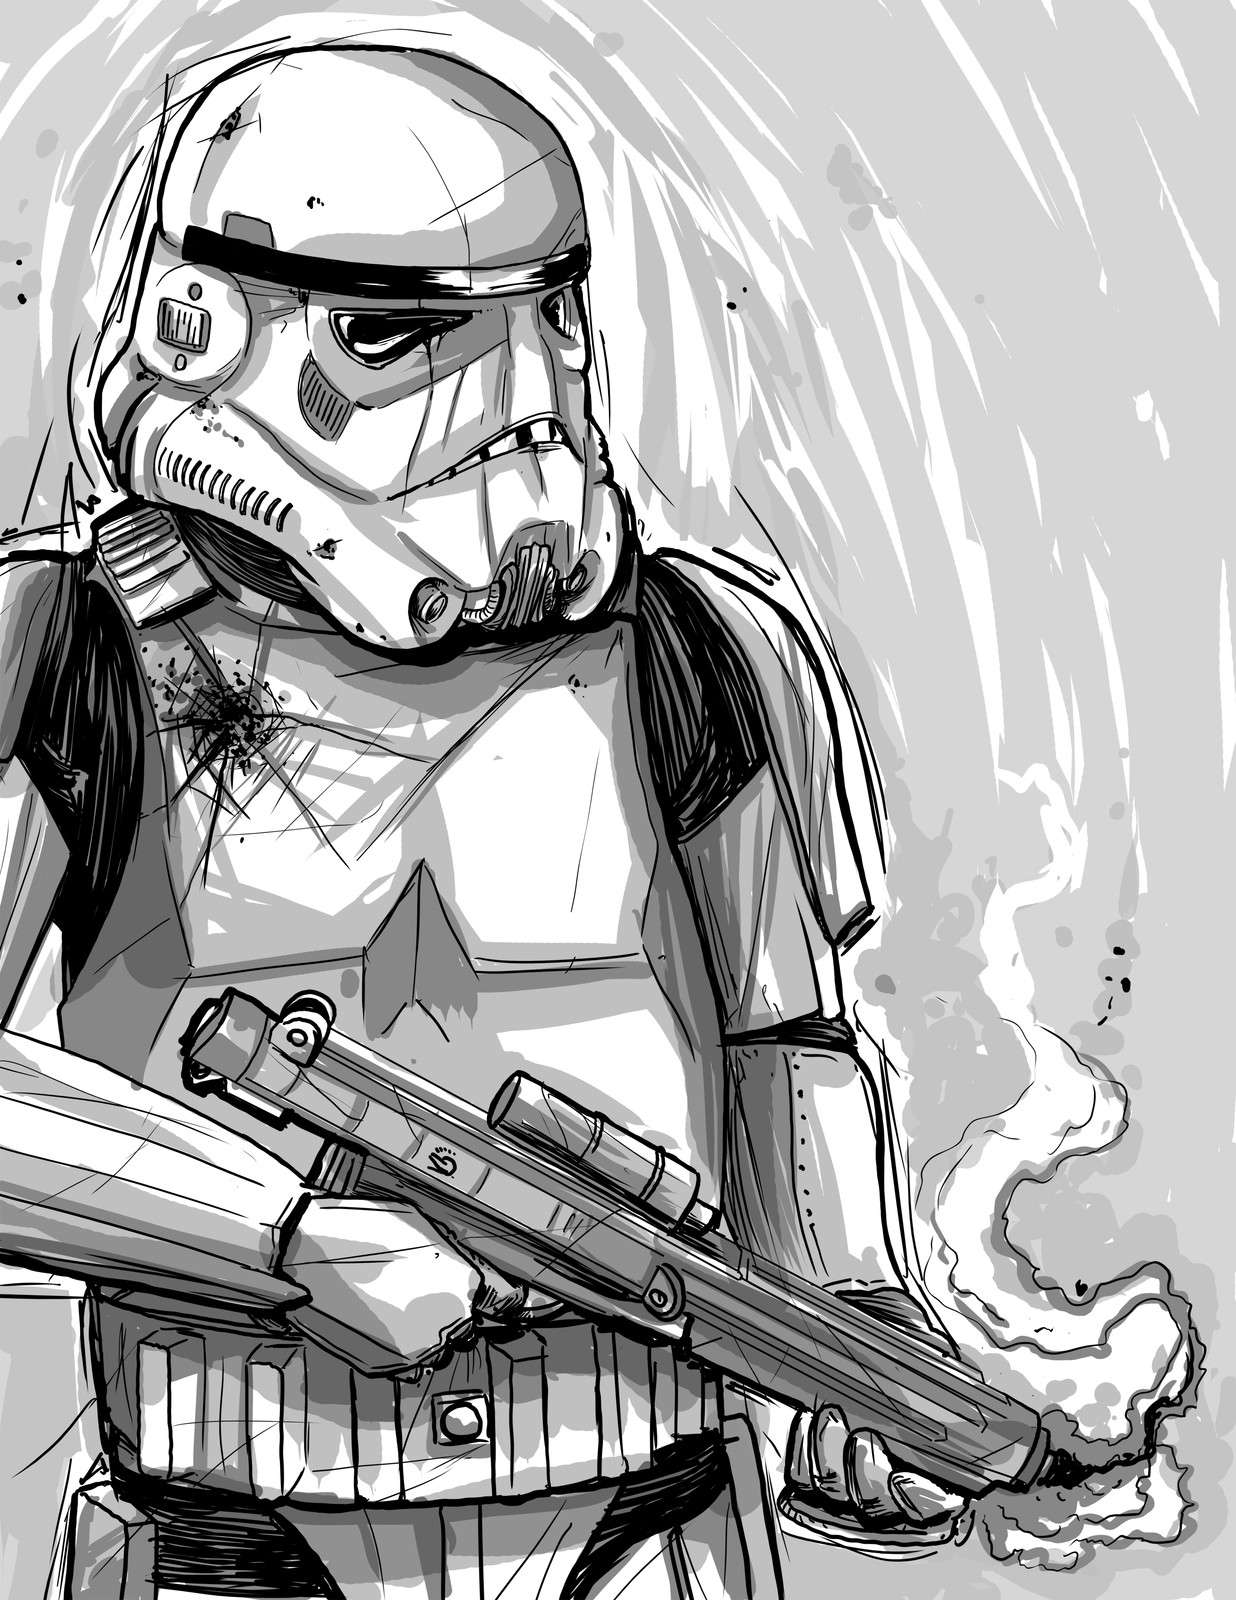 Stormtrooper Battle Damaged